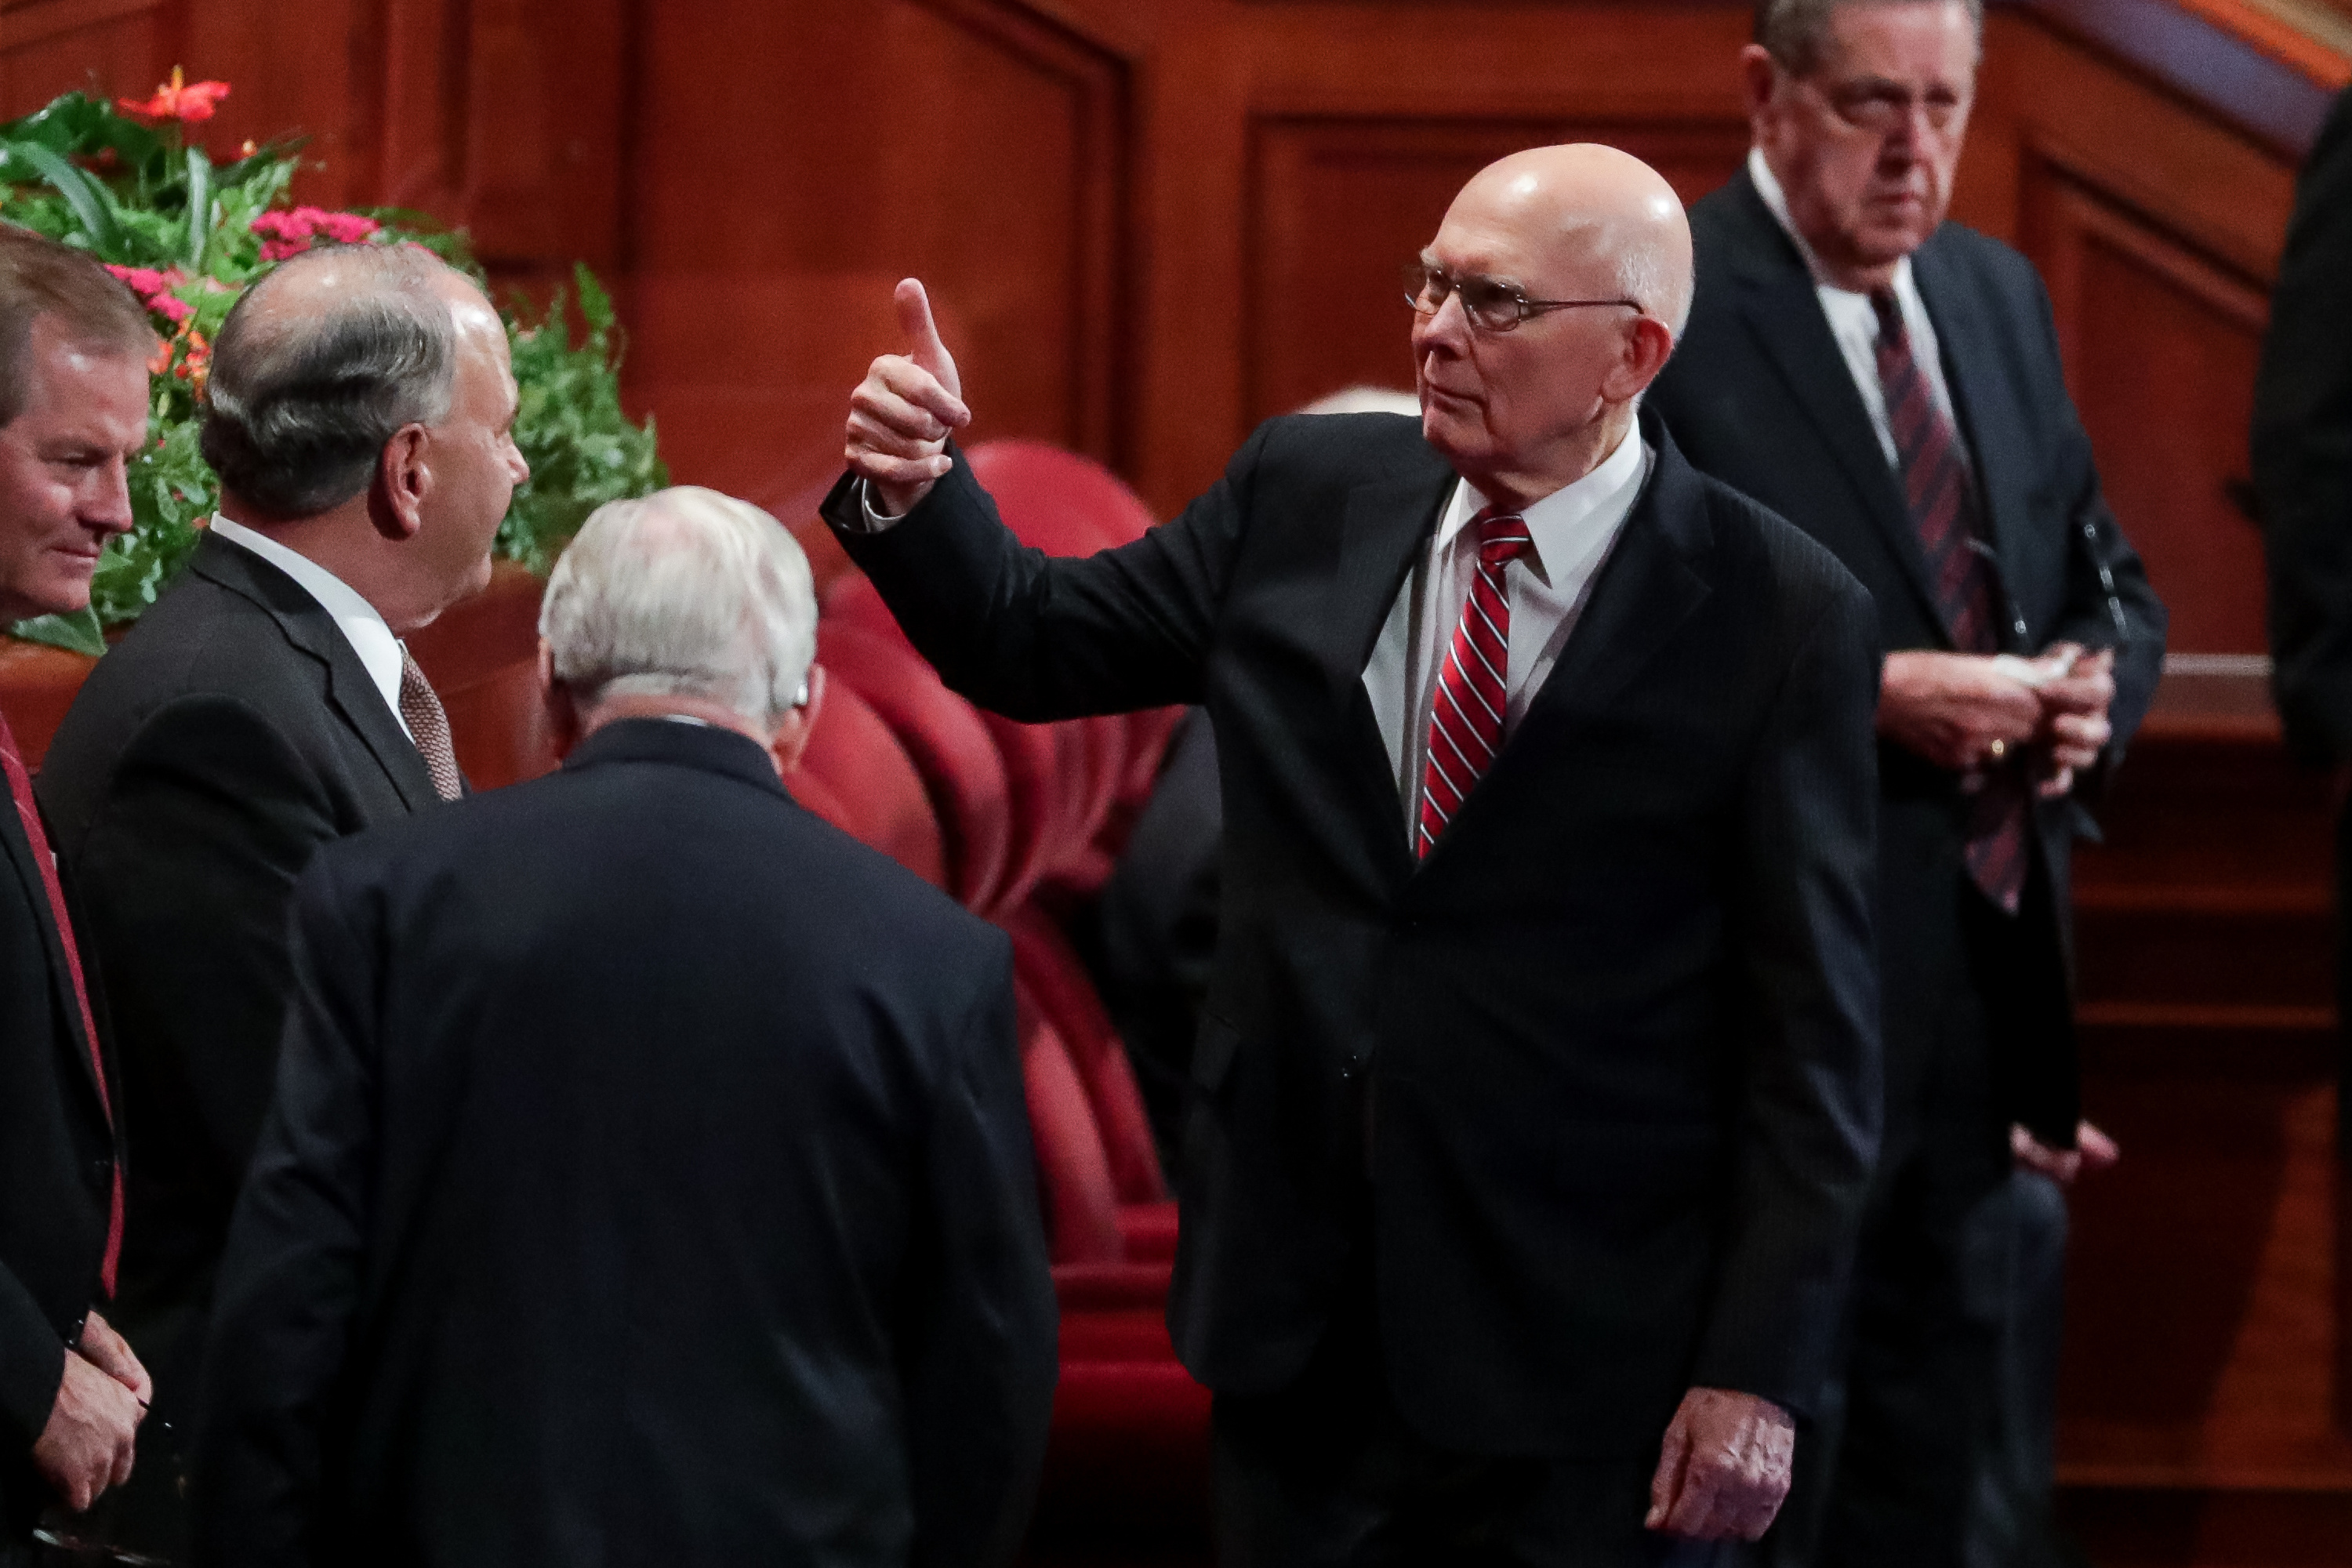 President Dallin H. Oaks, first counselor in the First Presidency, flashes a thumbs-up before the start of the Saturday morning session of the 188th Semiannual General Conference of The Church of Jesus Christ of Latter-day Saints in the Conference Center in Salt Lake City on Saturday, Oct. 6, 2018.